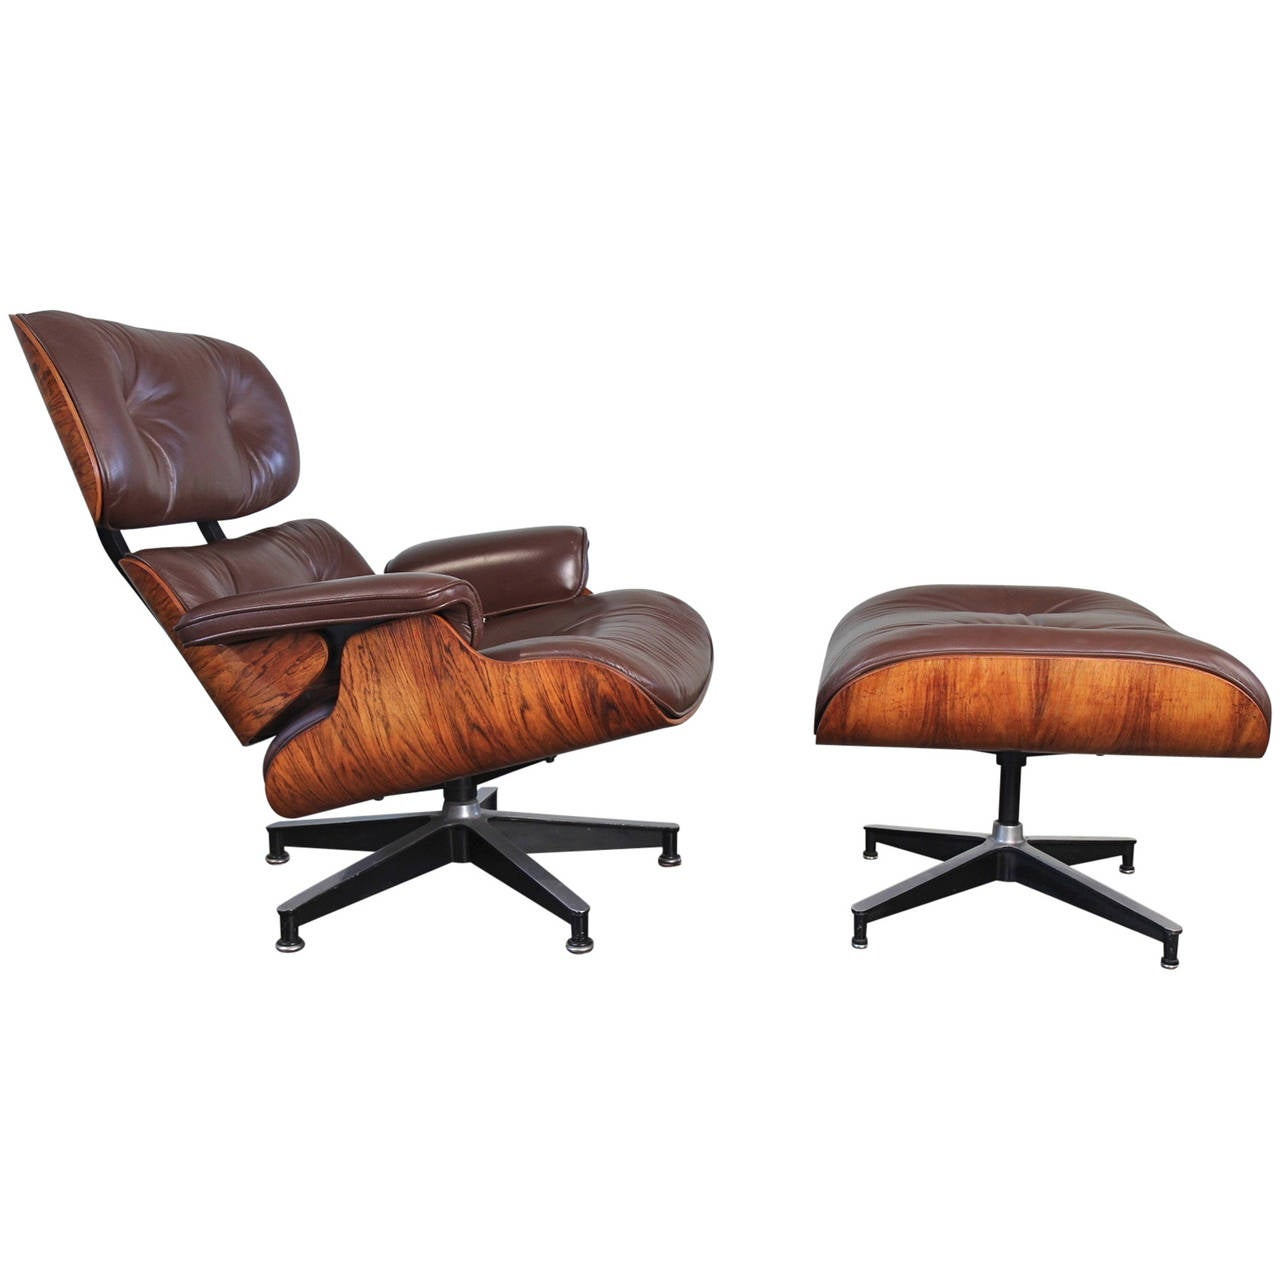 Eames 670 Lounge Chair and 671 Ottoman at 1stdibs